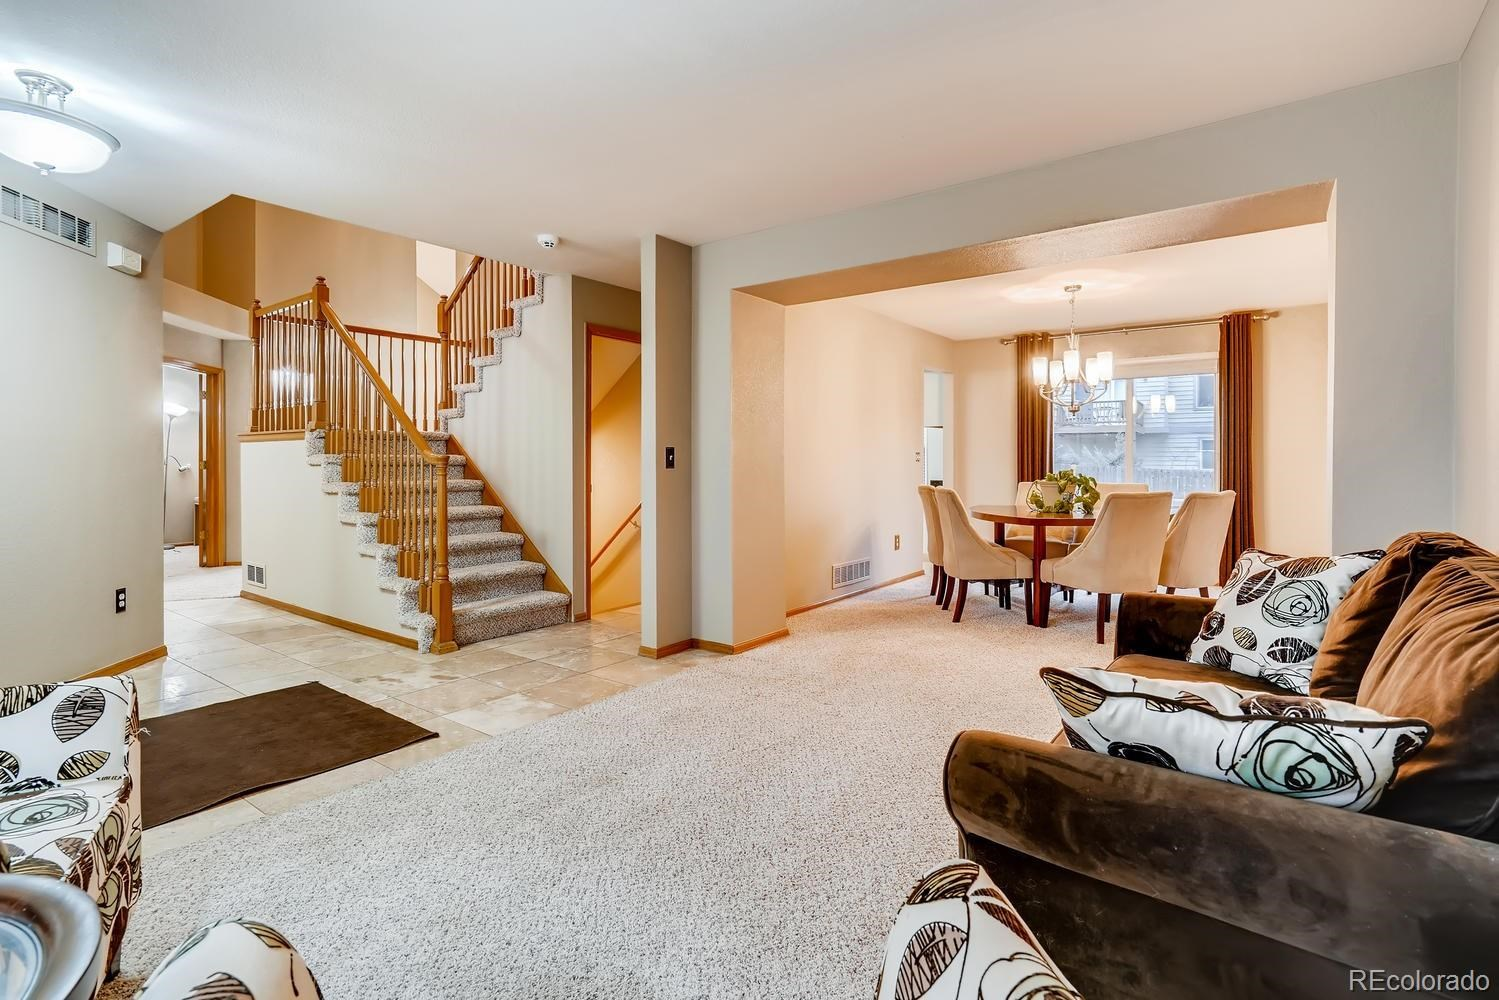 MLS# 6431155 - 5 - 6773 W 98th Circle, Westminster, CO 80021